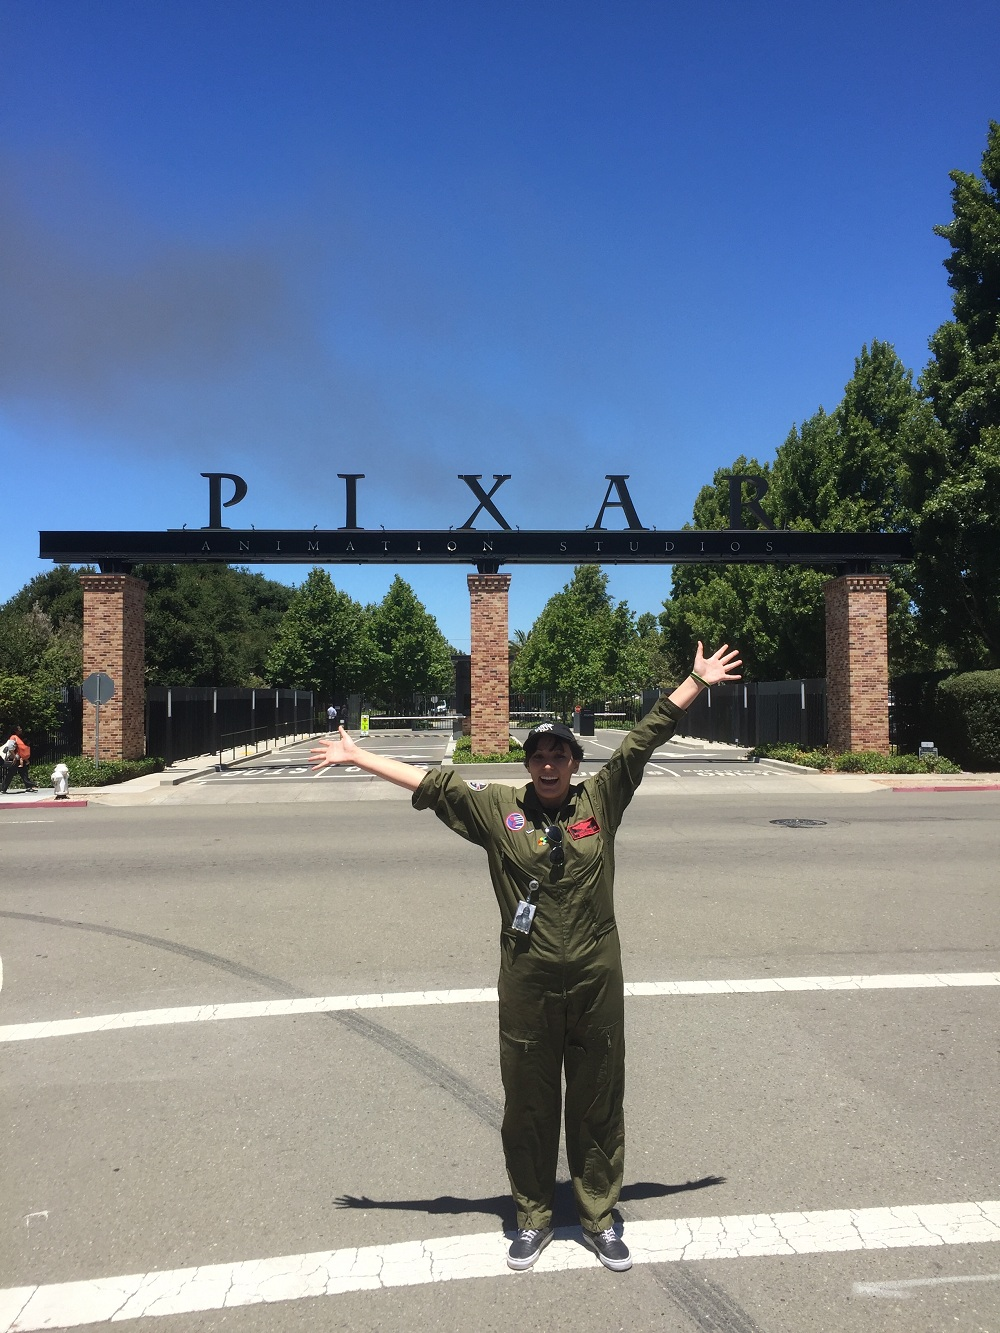 "Briana Ornelas, former WHS student, at Pixar Animation Studios entrance wearing an original jumpsuit from the movie ""Top Gun"", which is the theme for this year's summer internship program."